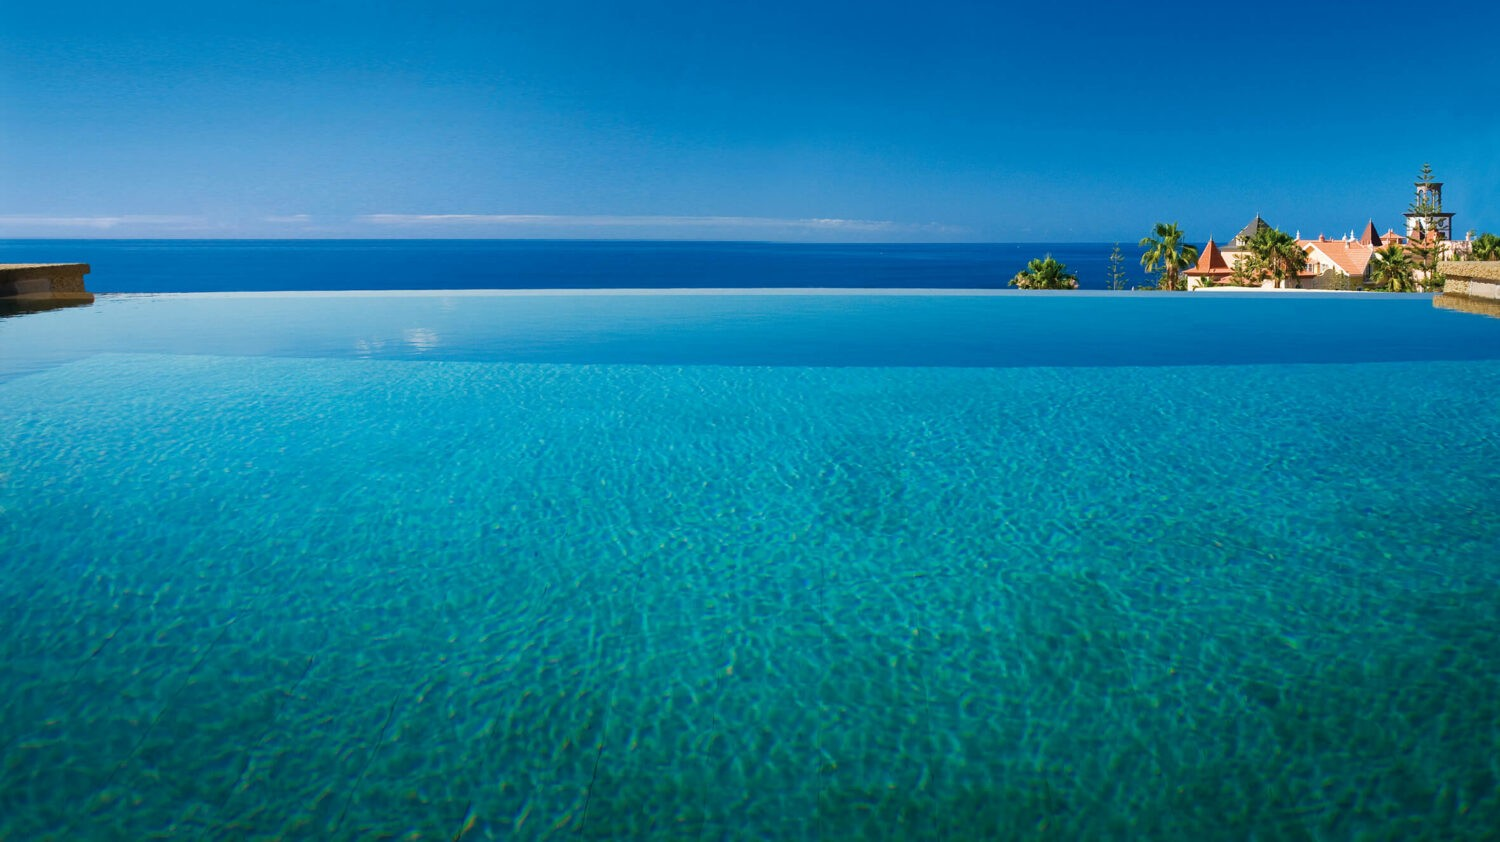 infinity pool-gran hotel bahía del duque resort tenerife spain